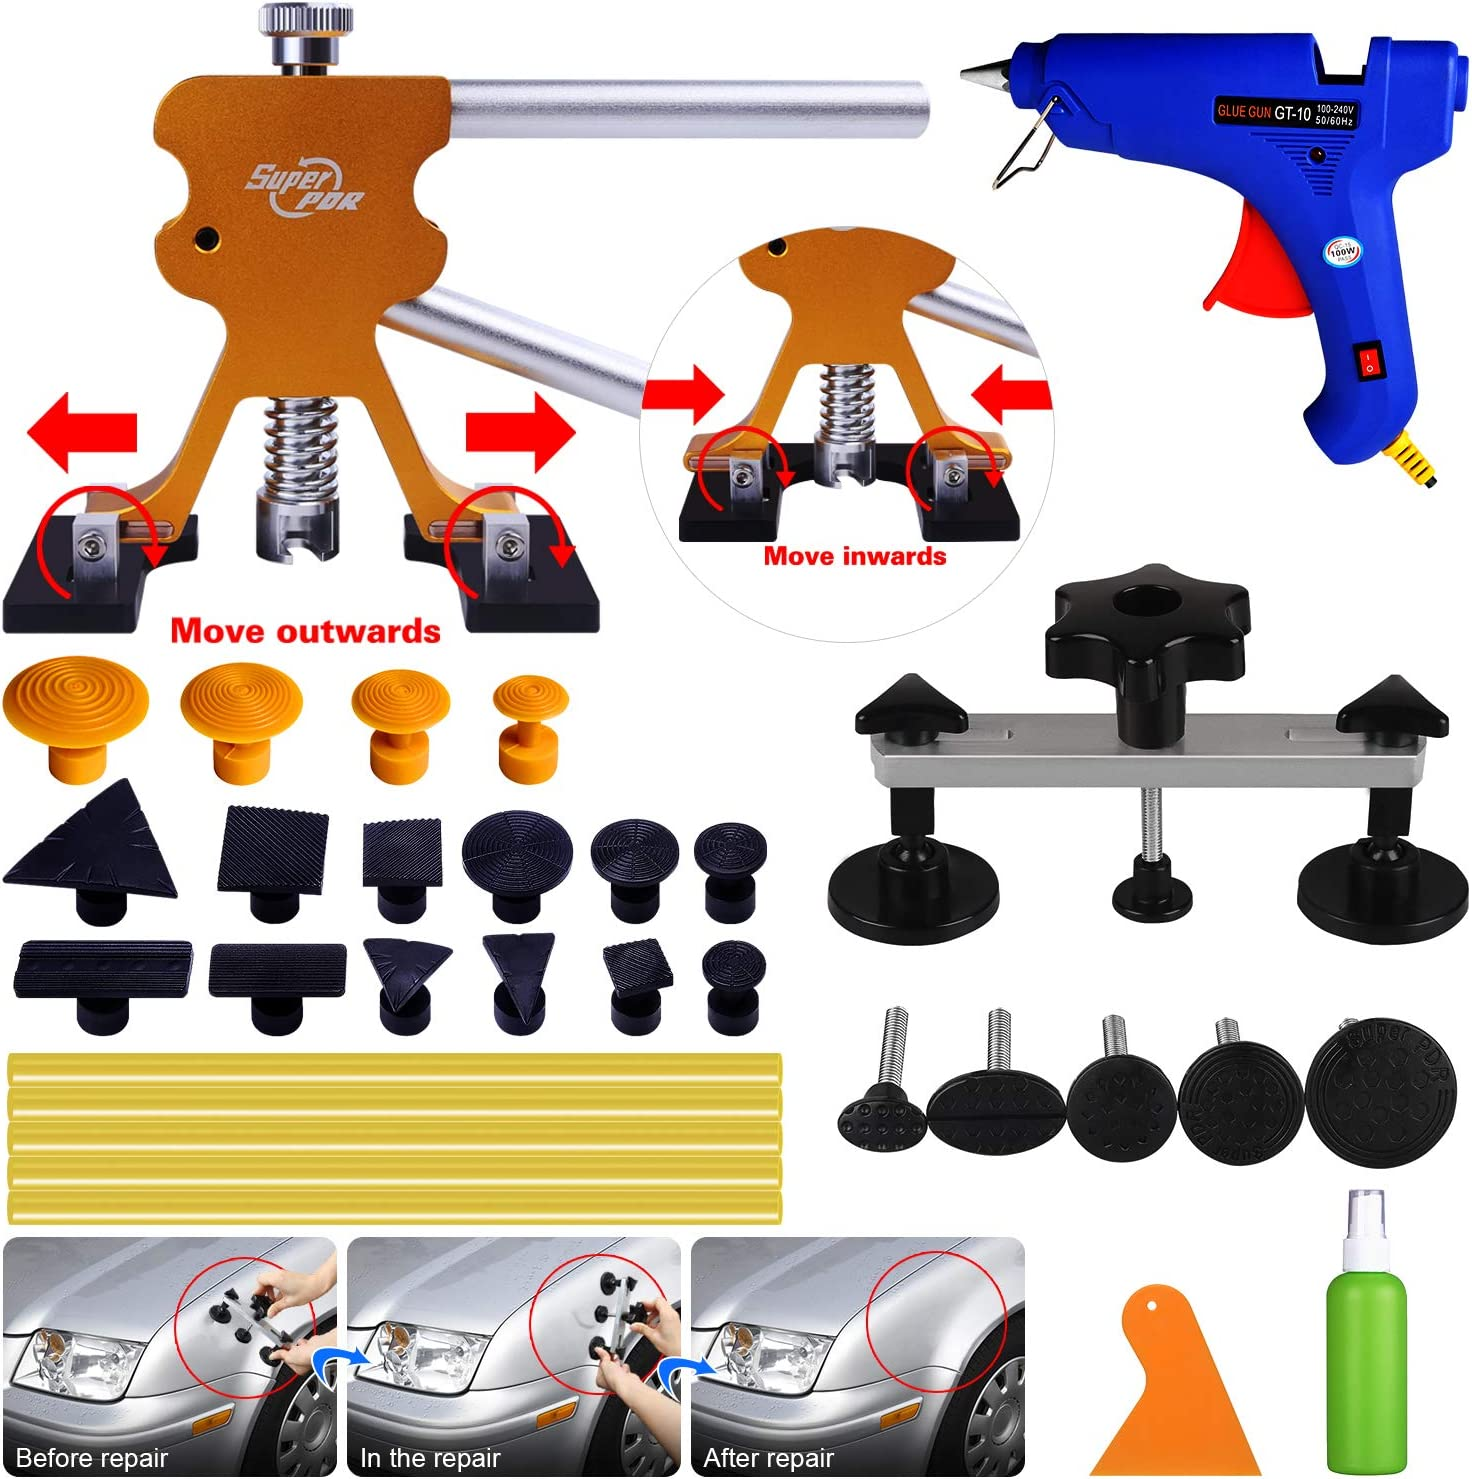 AUTOPDR Dent Removal kit, Paintless Dent Repair Kits Pops a Dent Puller Lifter Car Body Dent Removal Tools Remover for Auto Body Motorcycle Refrigerator Washing Machine